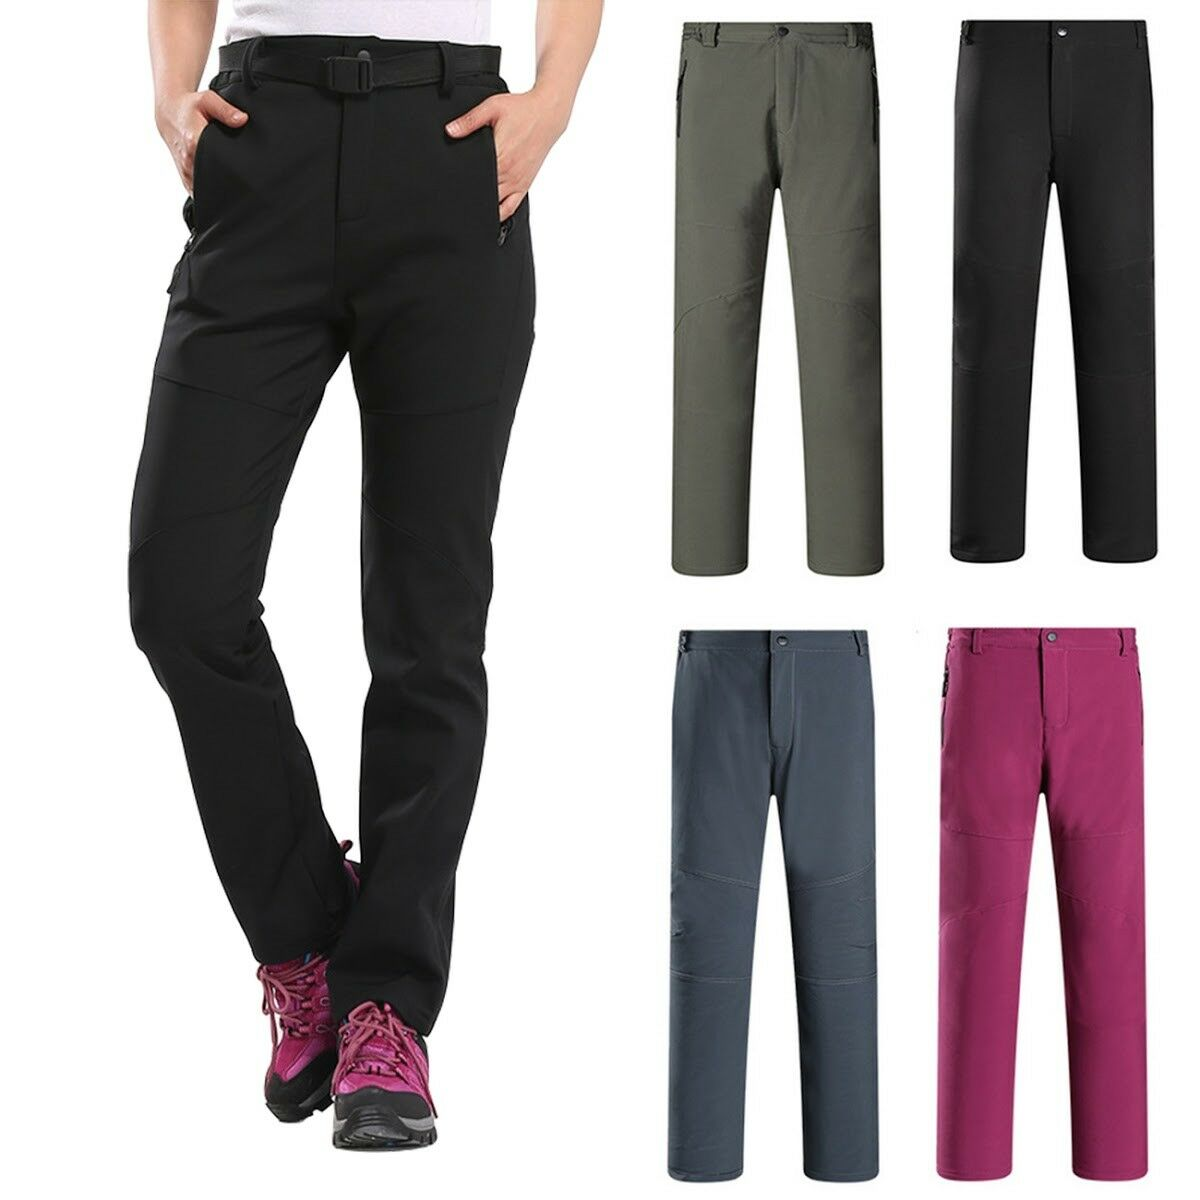 Thick Thermal Women Windproof Winter Snow Ski Pants Trousers